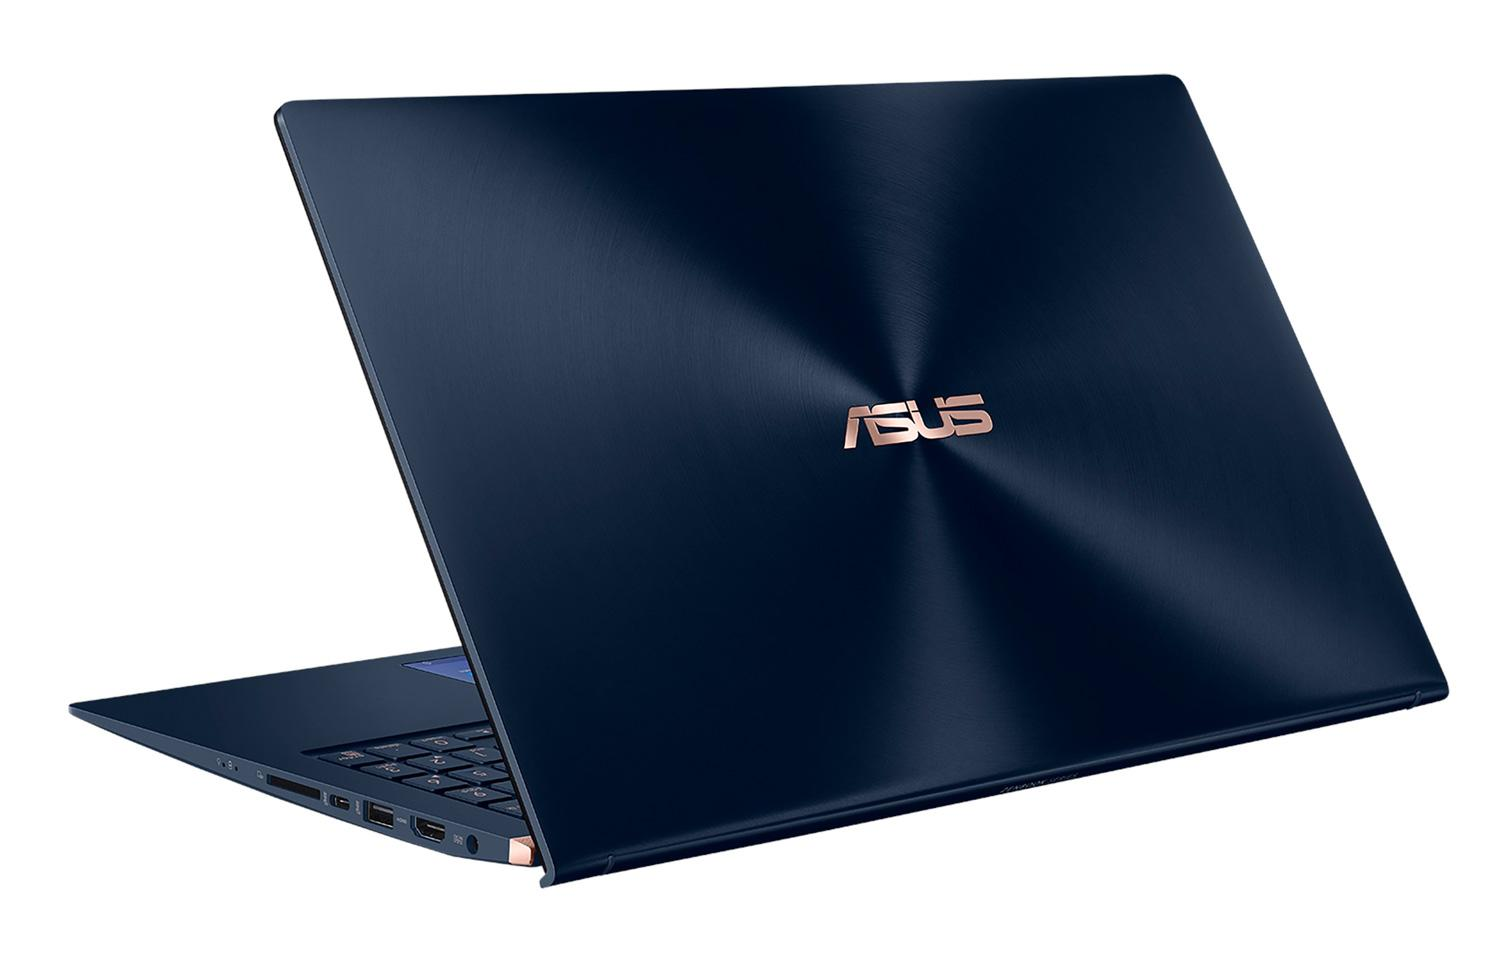 Image du PC portable Asus ZenBook UX534FT-AA025R Bleu - 4K, GTX 1650 Max-Q, SSD 1 To, ScreenPad